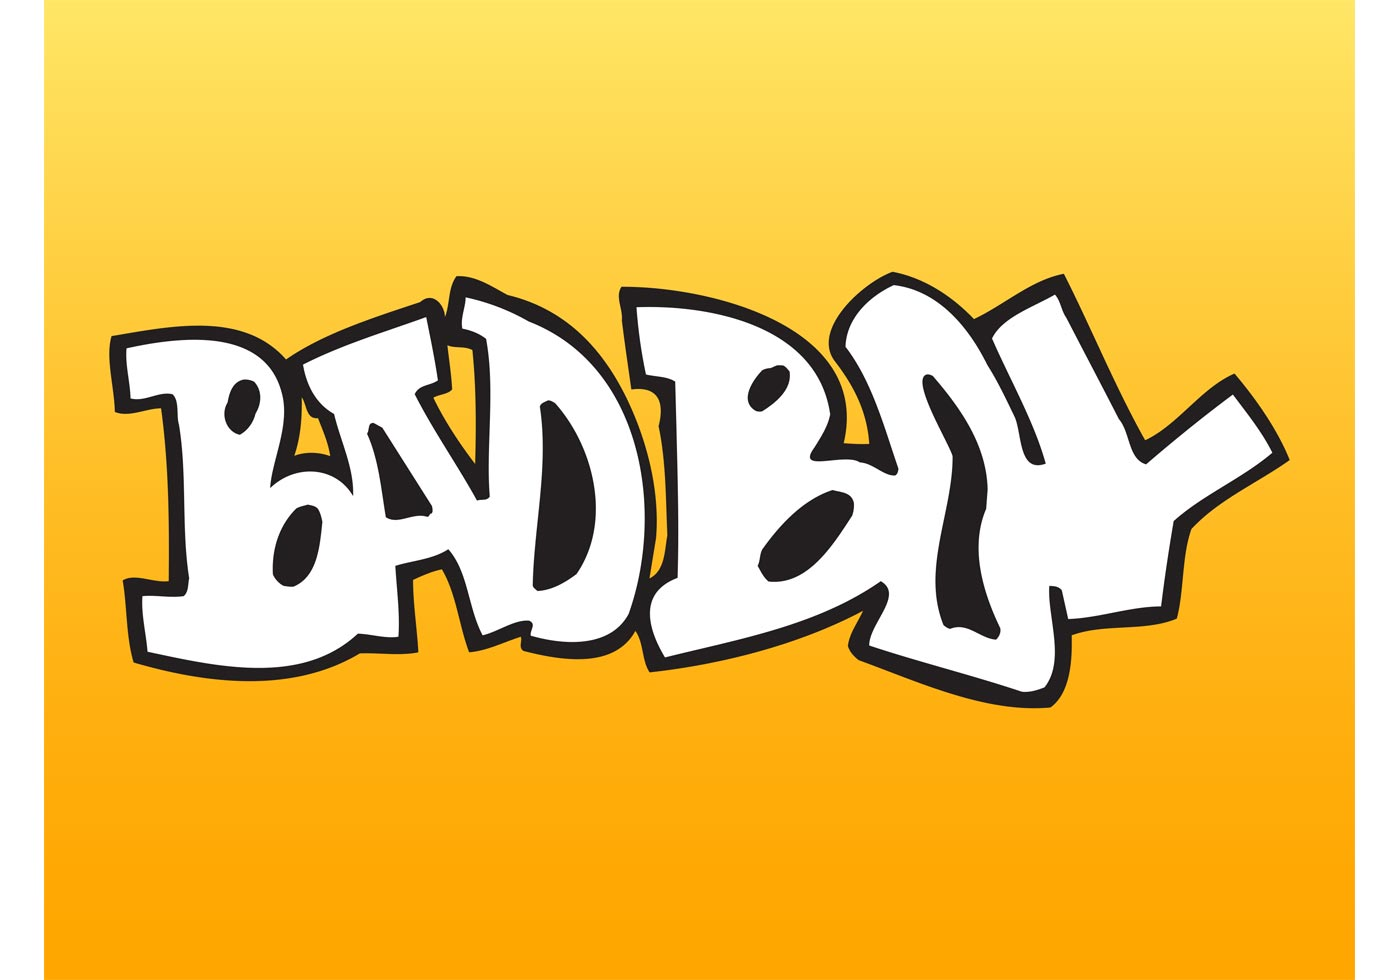 Bad Boy Graffiti - Download Free Vector Art, Stock Graphics & Images